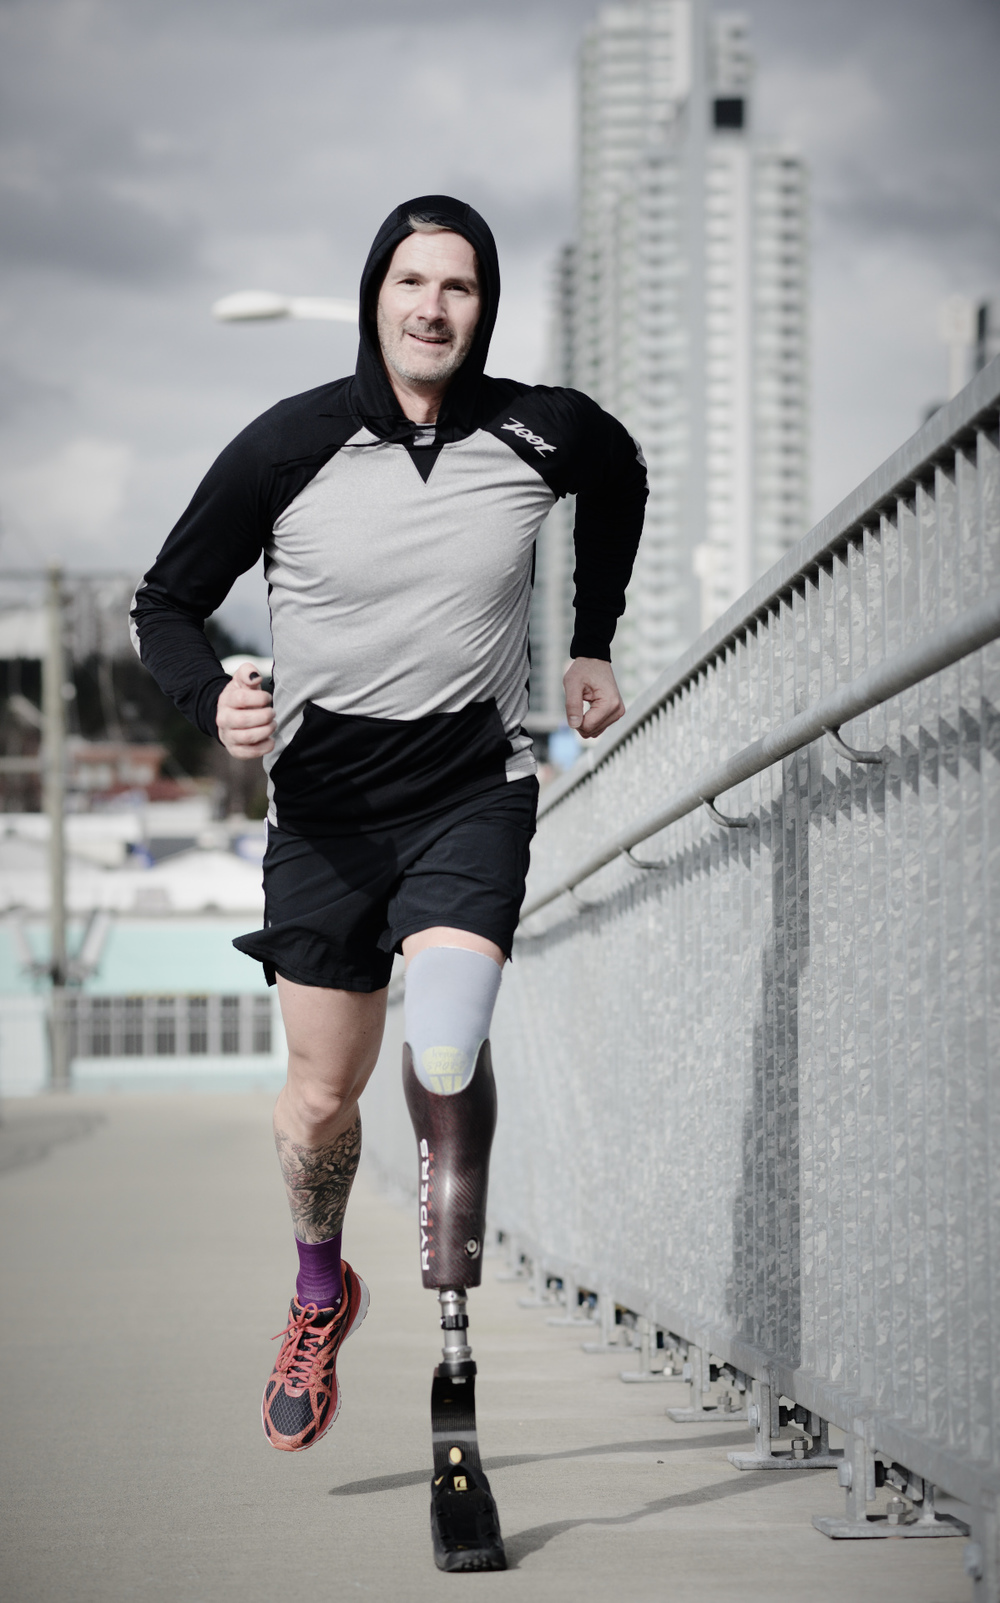 runner with transtibial prosthesis